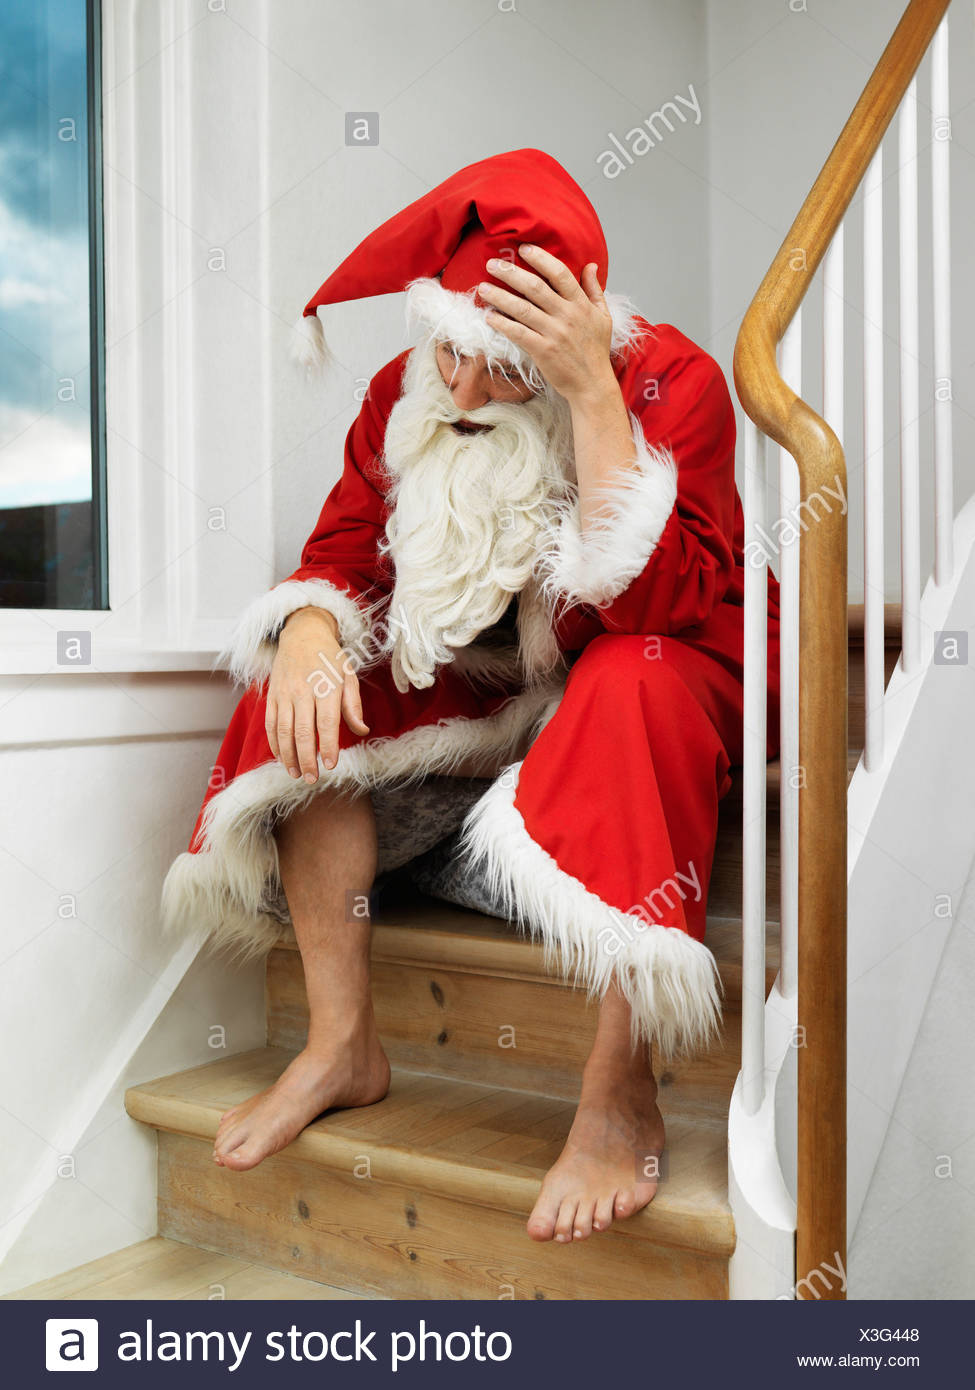 Man in Santa Claus suit sitting on steps - Stock Image